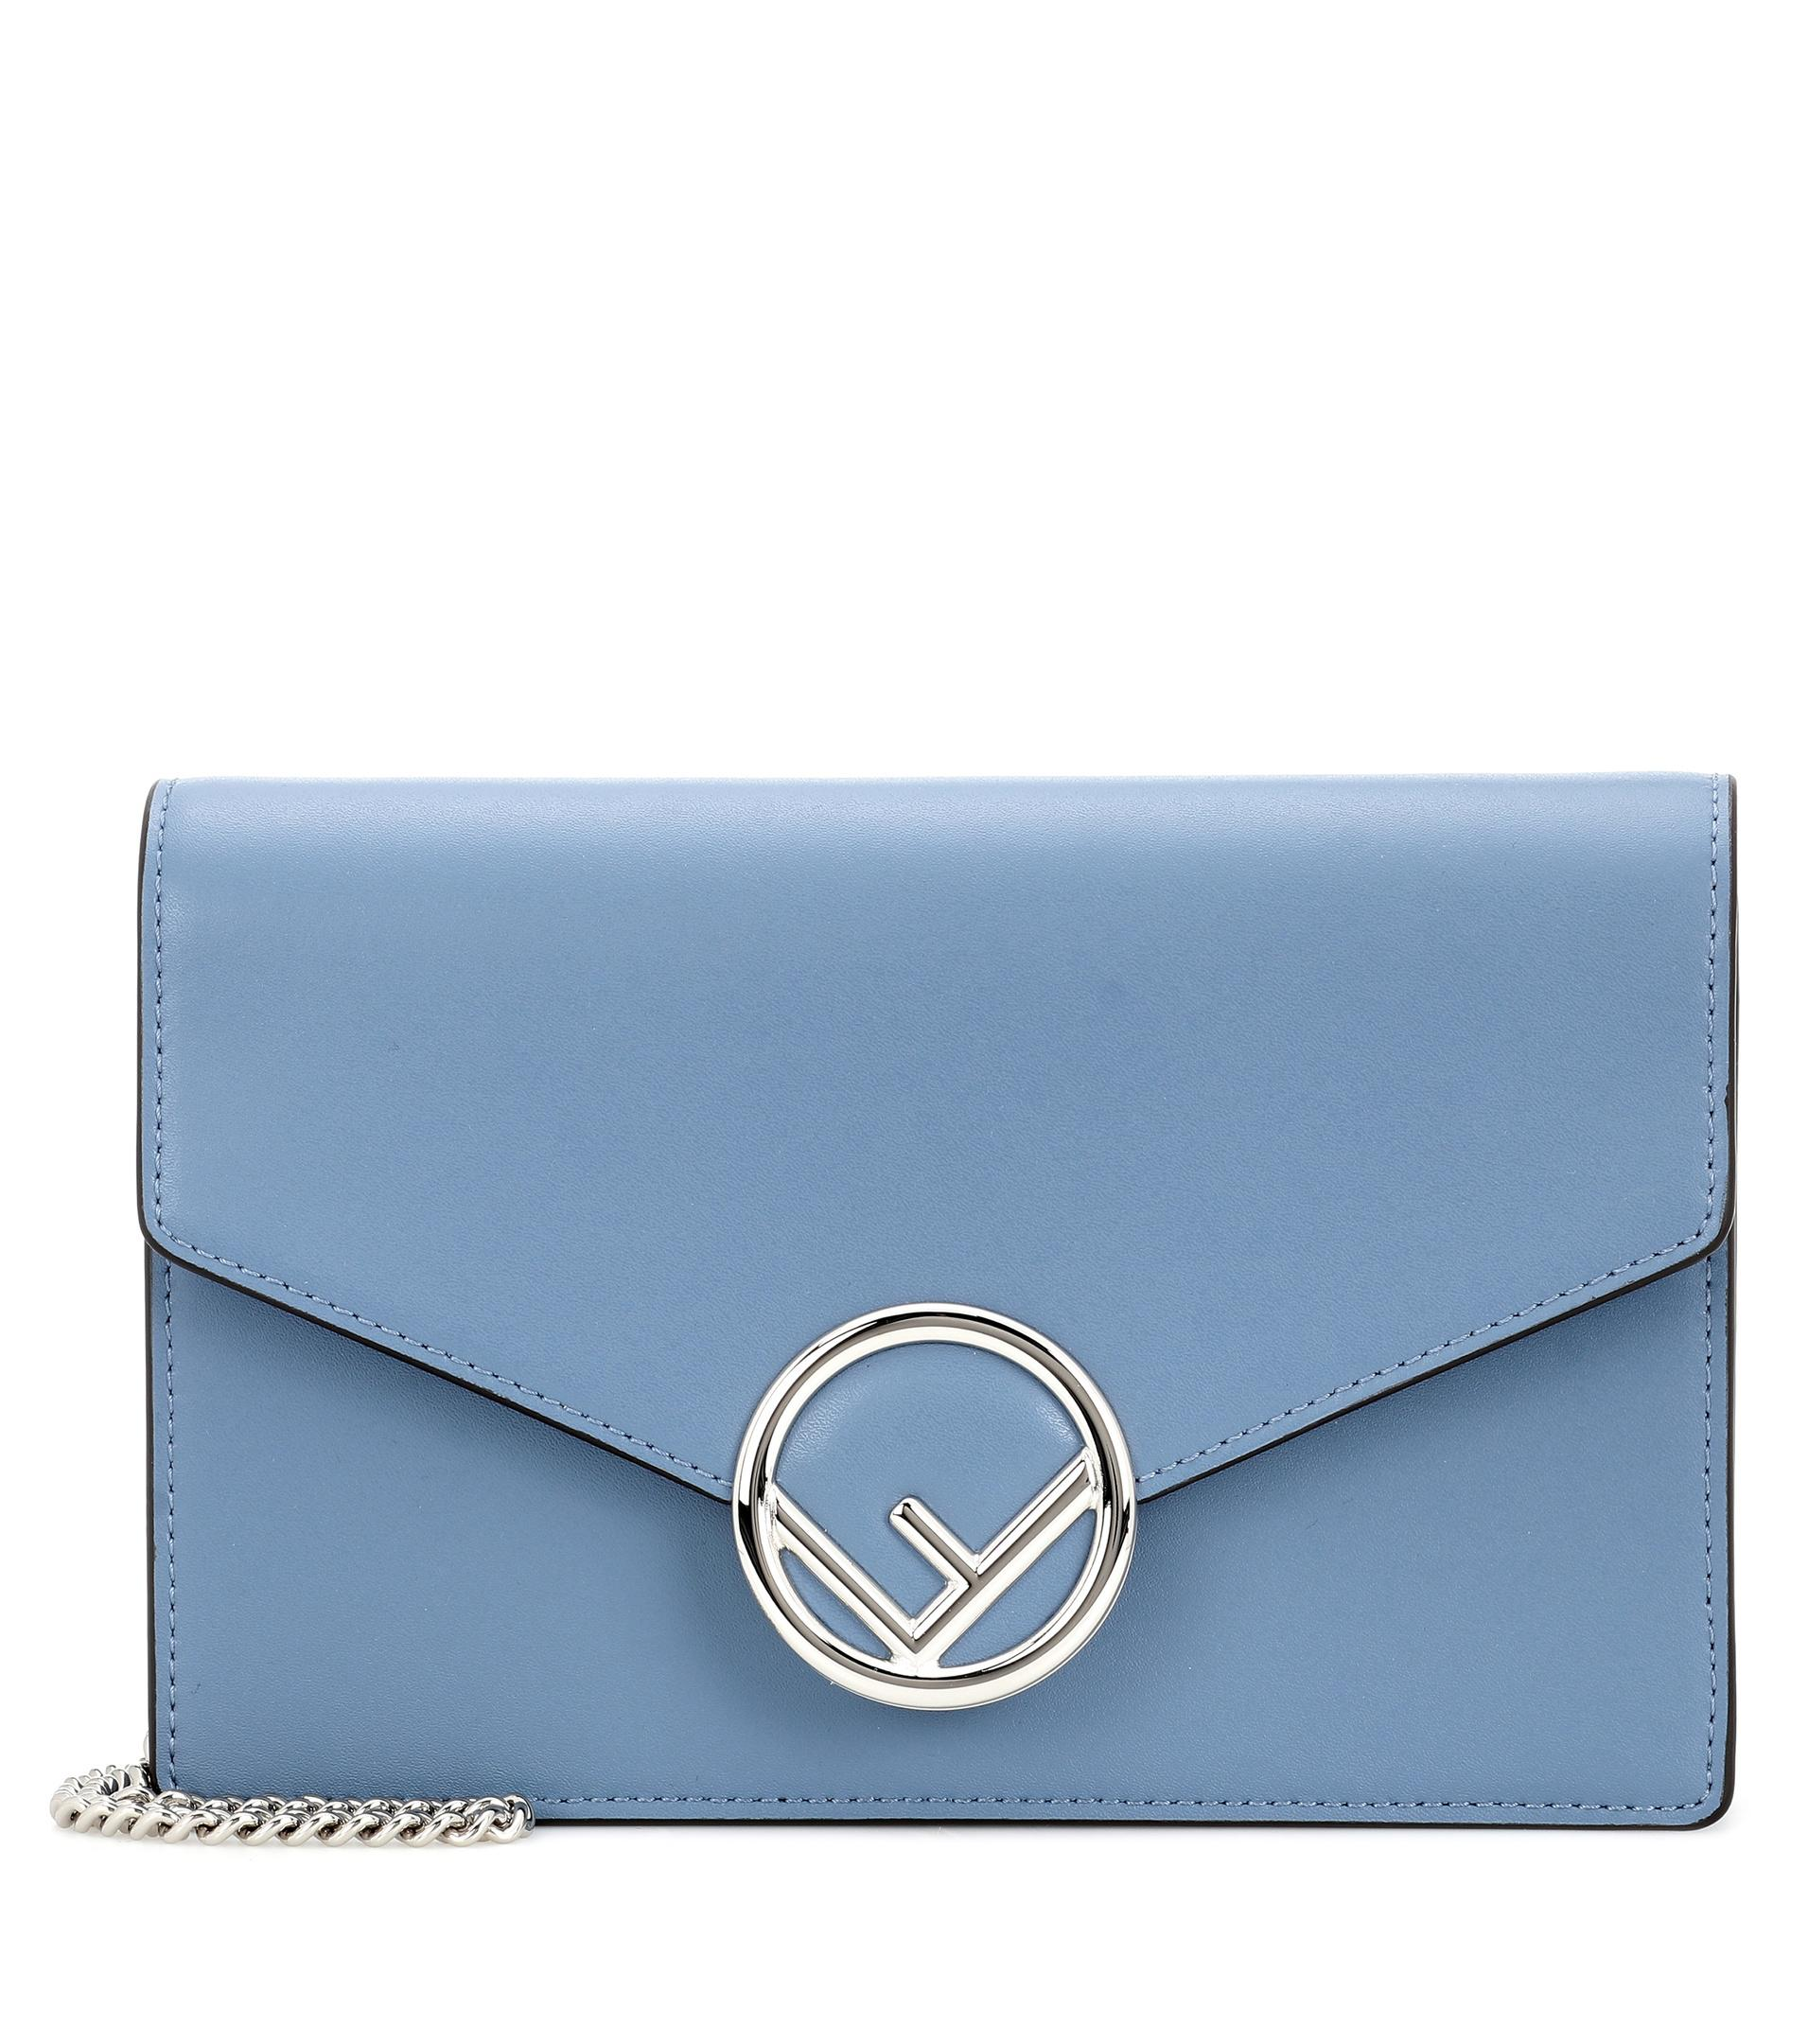 1b025dcc93a8 ... discount code for fendi. womens blue wallet on chain leather shoulder  bag f3d55 59f62 ...